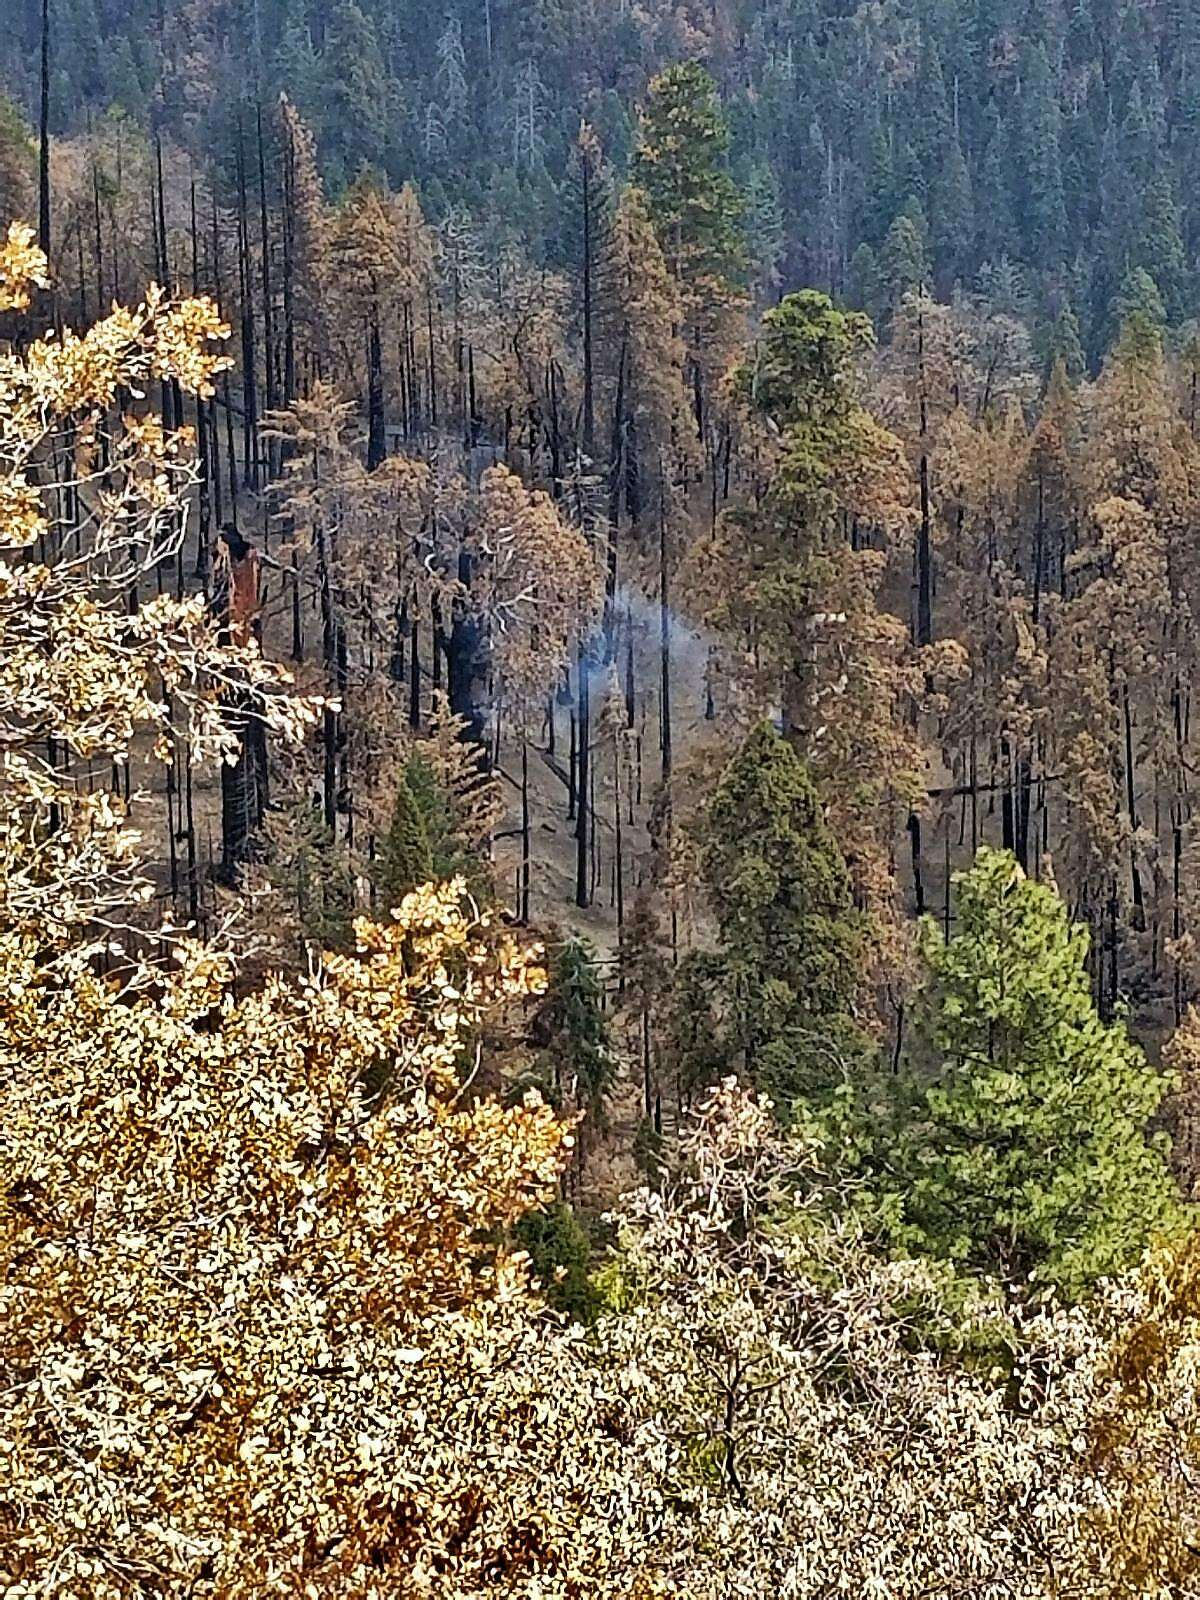 A giant sequoia tree in Sequoia National Park caught fire in August 2020 during the Castle Fire and is still smoldering nine months later.